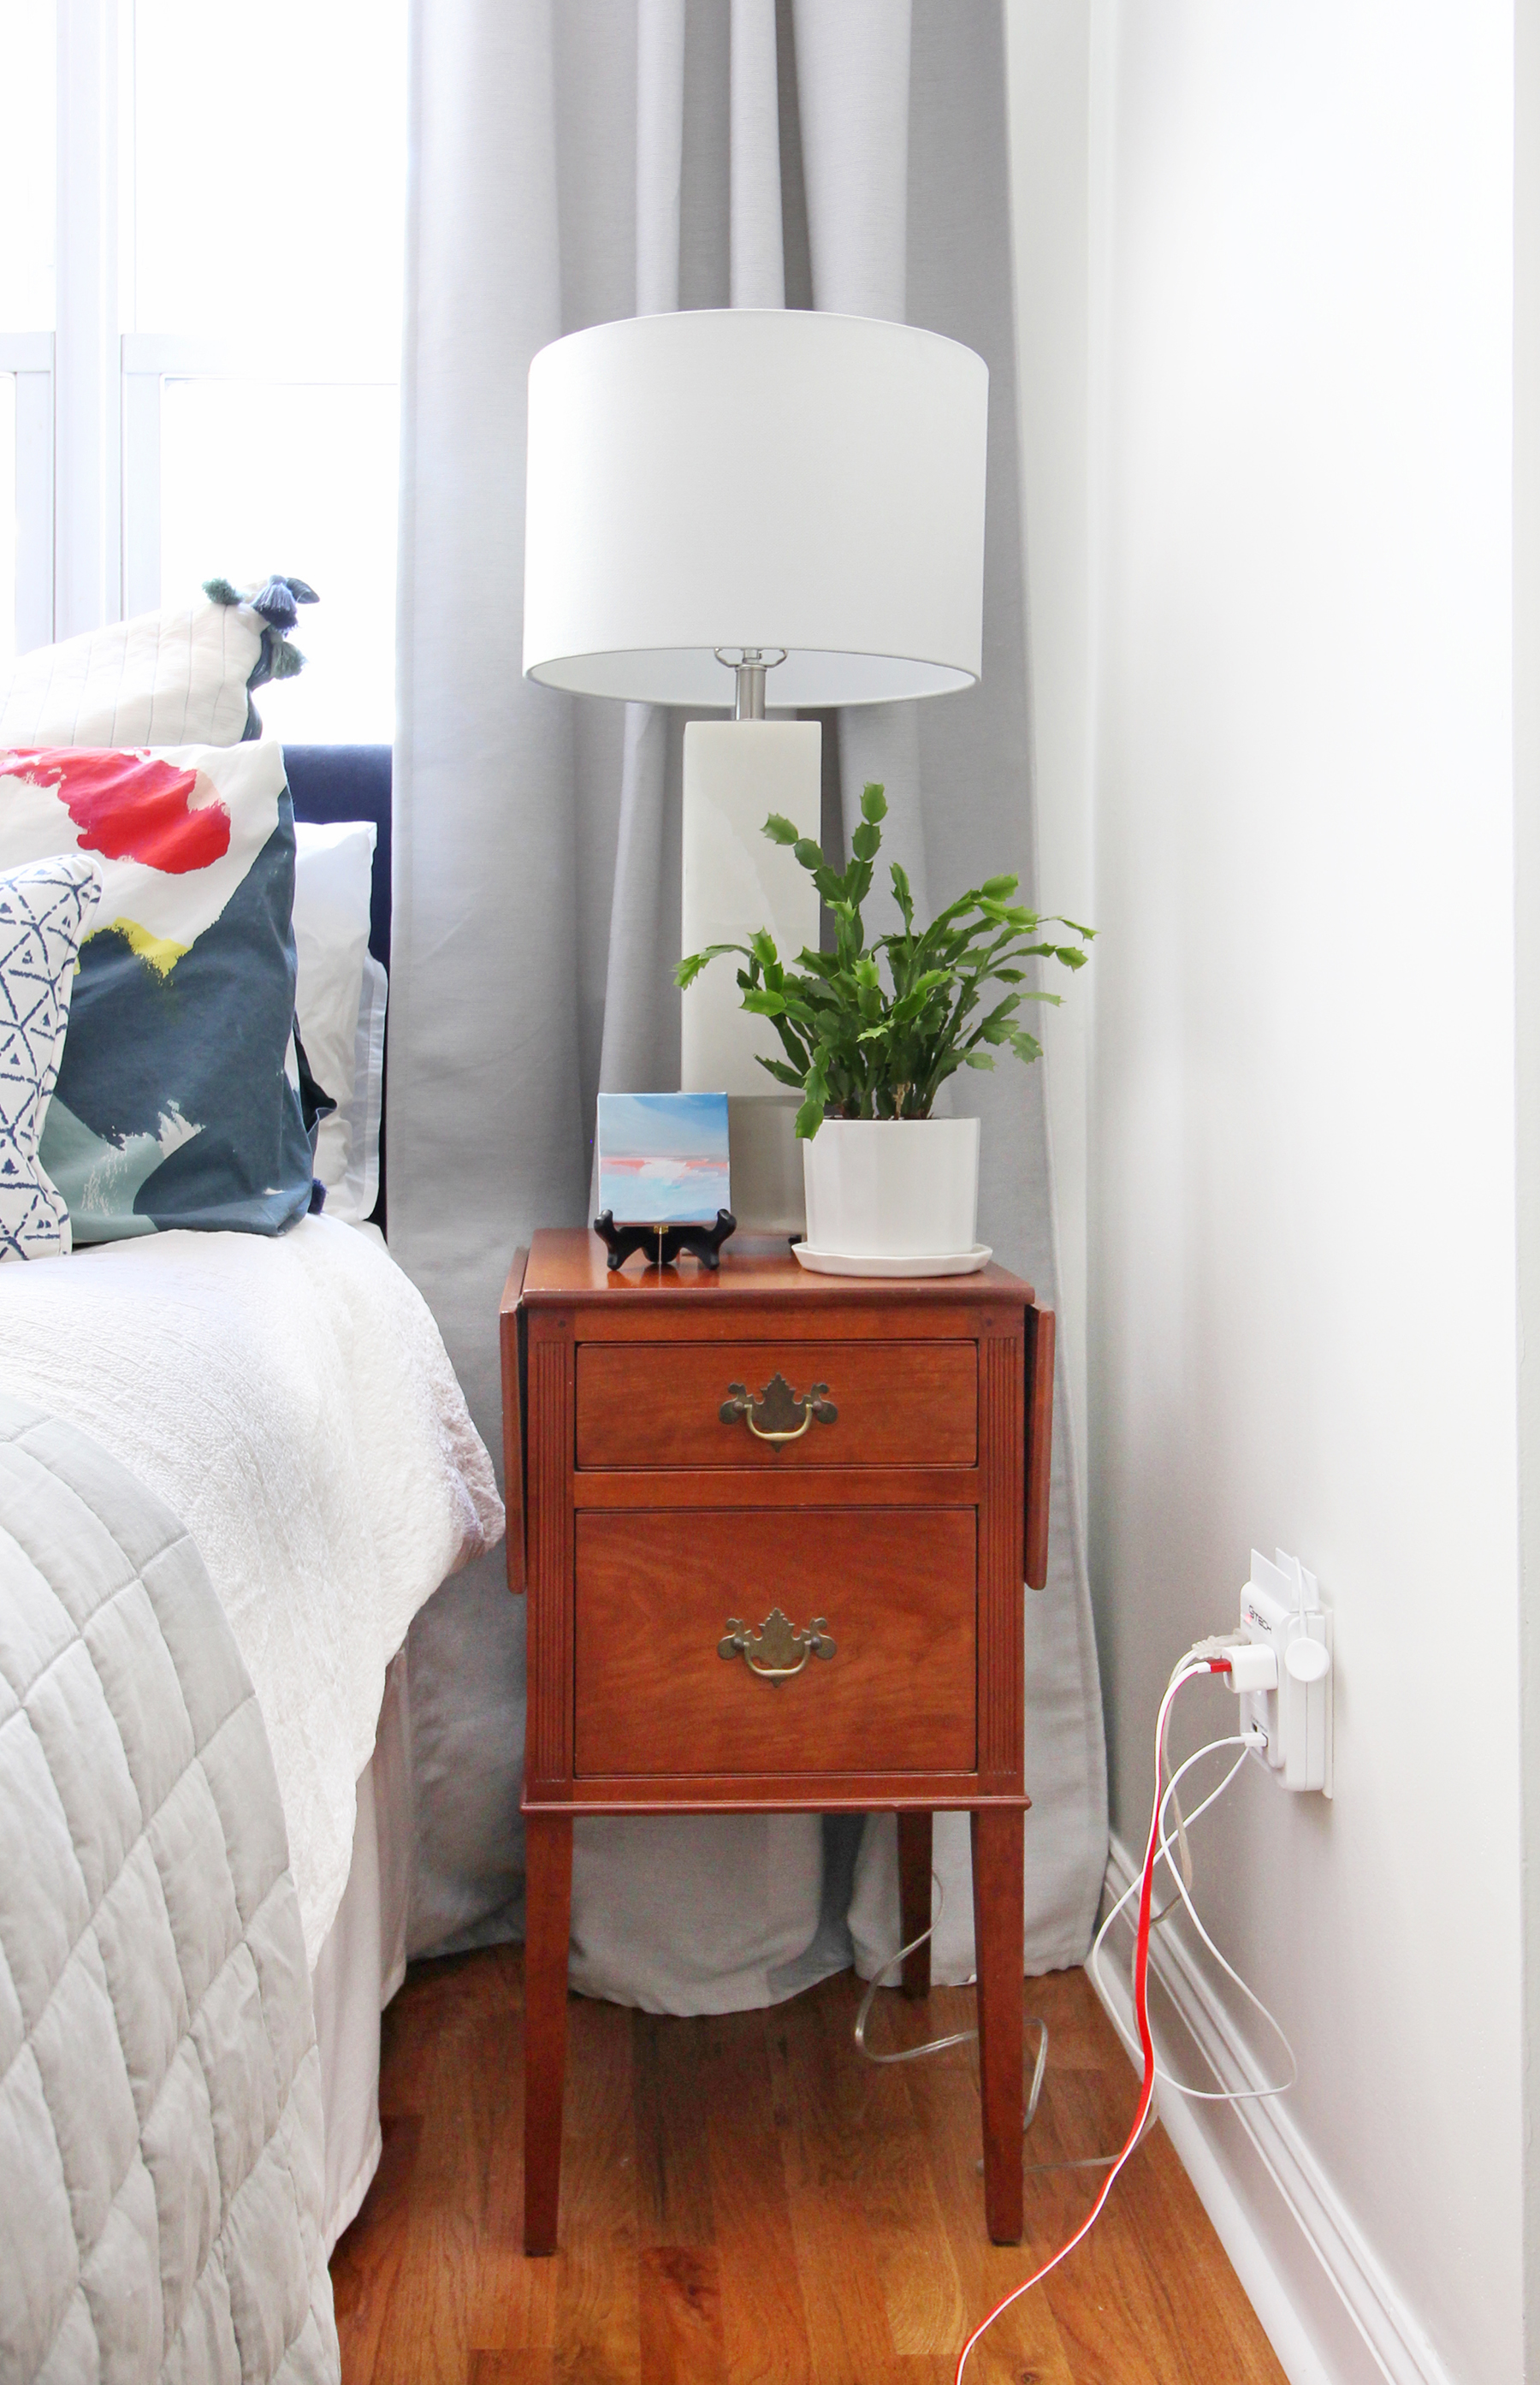 Want to upgrade the hum-drum electrical outlets in your home to something modern and sleek? Legrand's radiant Collection may be the perfect fit. Come see how Mix & Match Design Company upgraded hers with USB outlets to add functionality and style to her eclectic modern master bedroom!